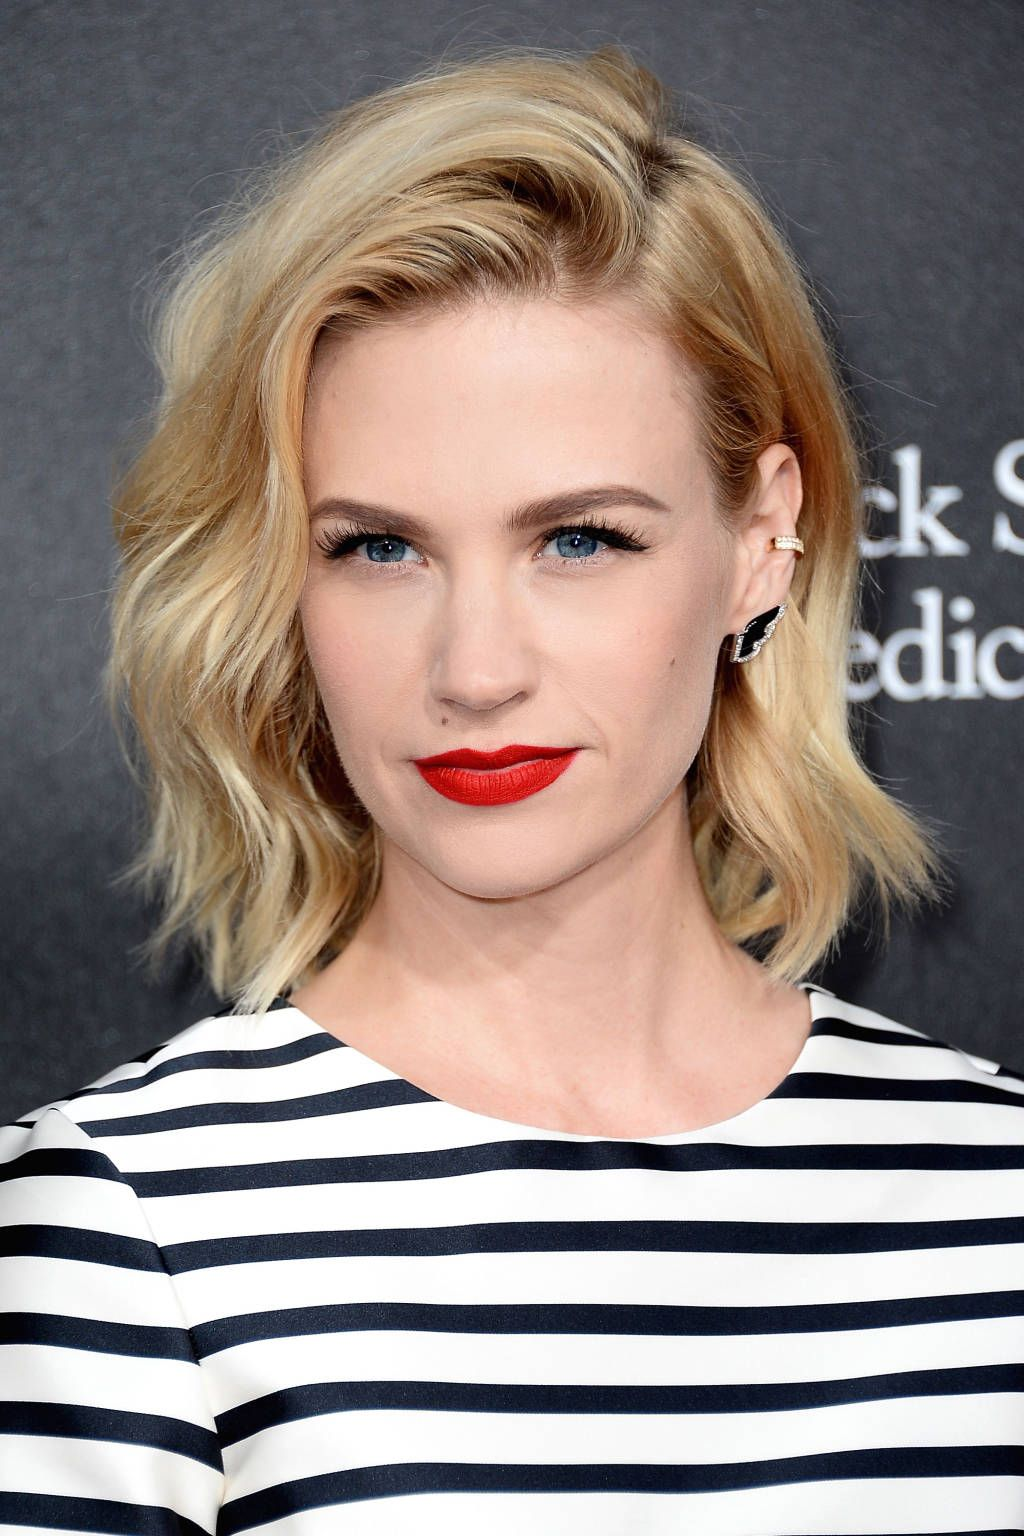 Todayus beauty secret january jones hair matte red lips and